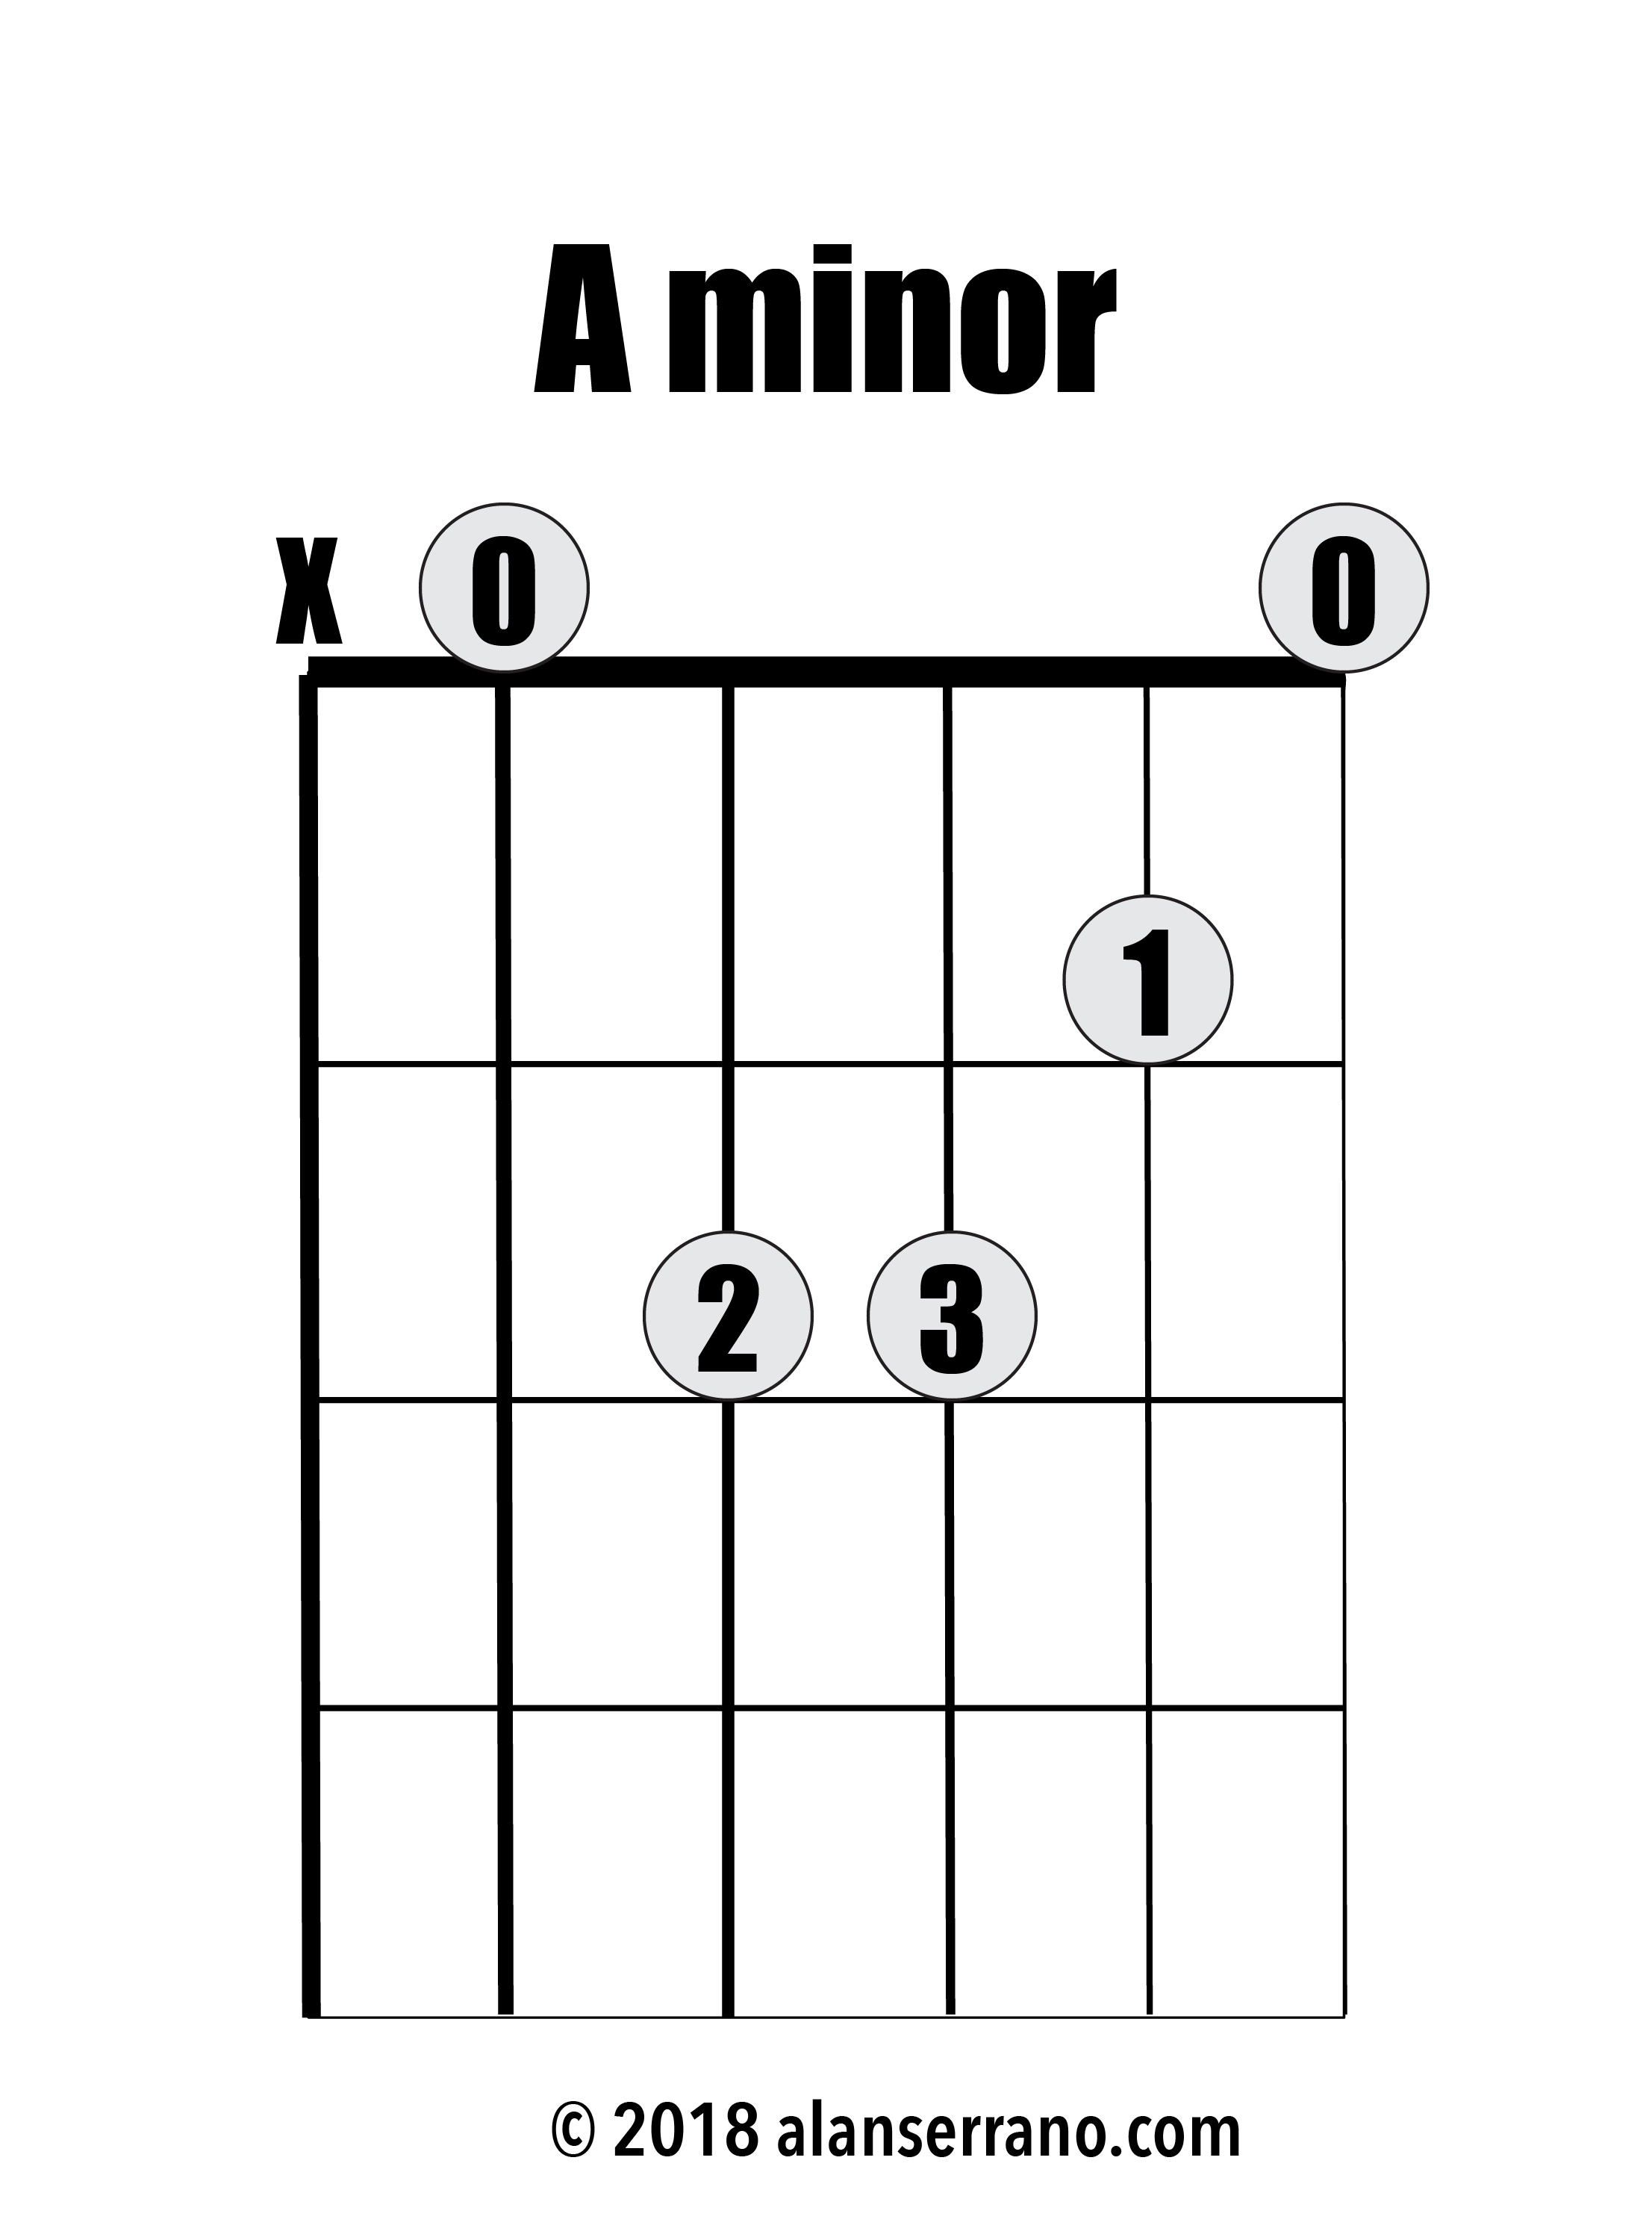 Common Open Guitar Chords And How To Practice Them